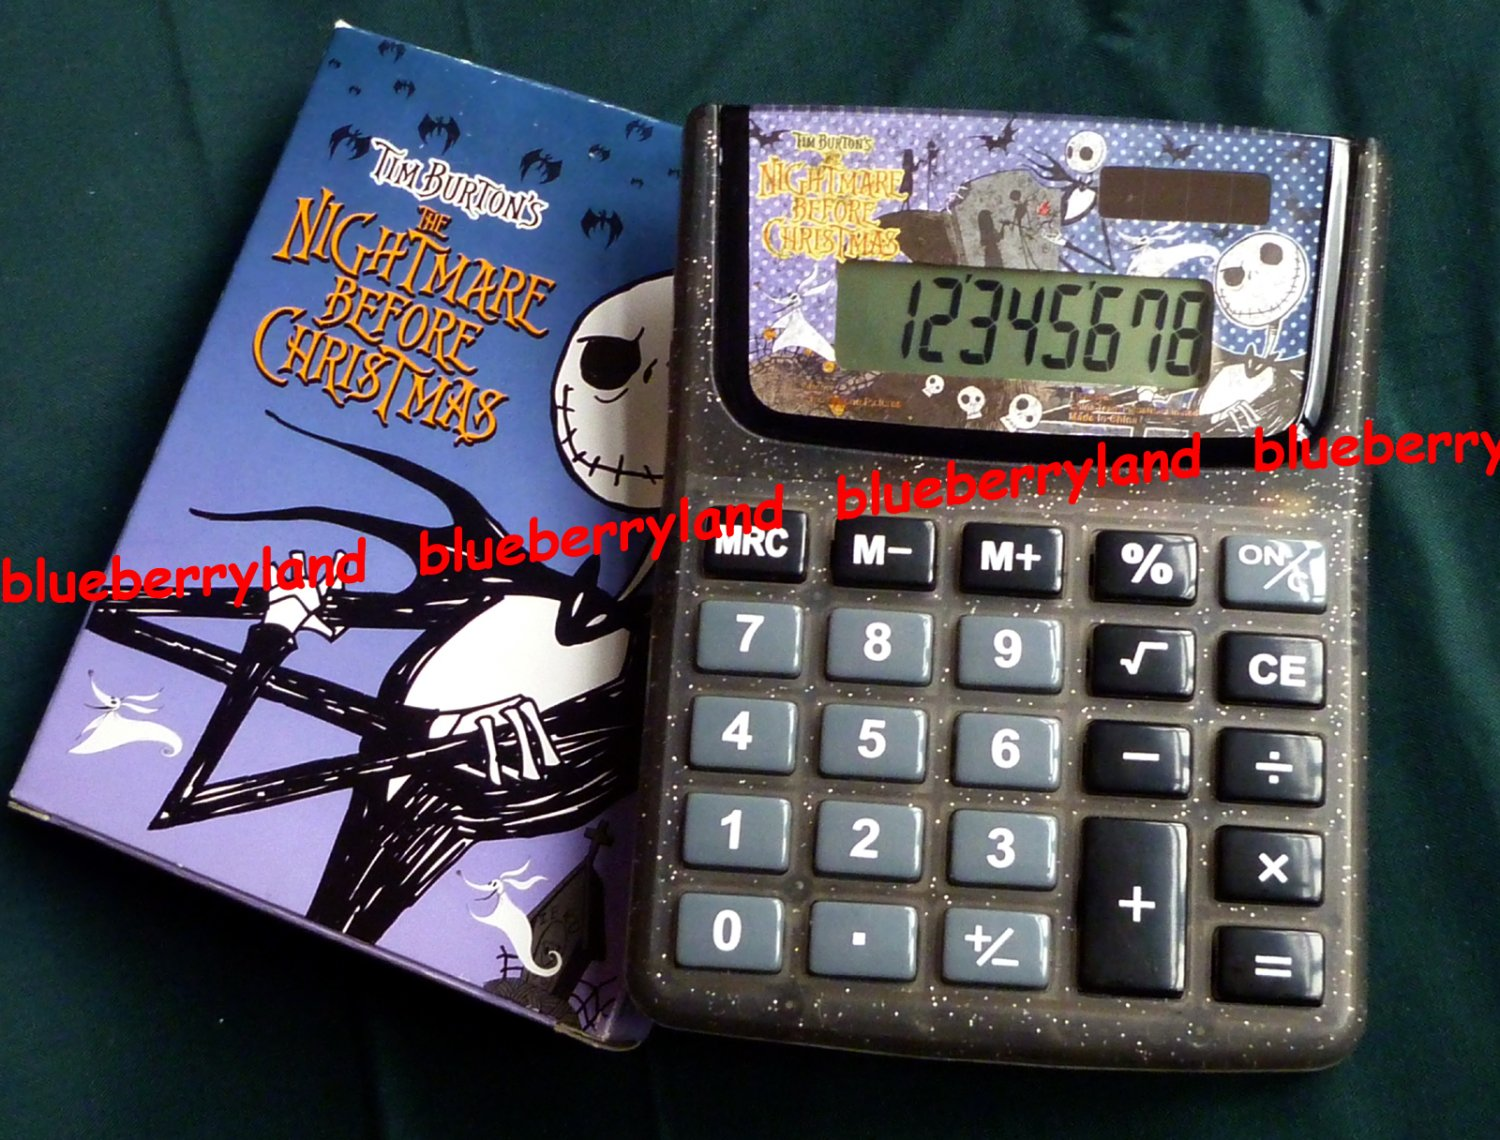 Disney Tim Burton�s The Nightmare Before Christmas Electronic Desktop Calculator stationery women